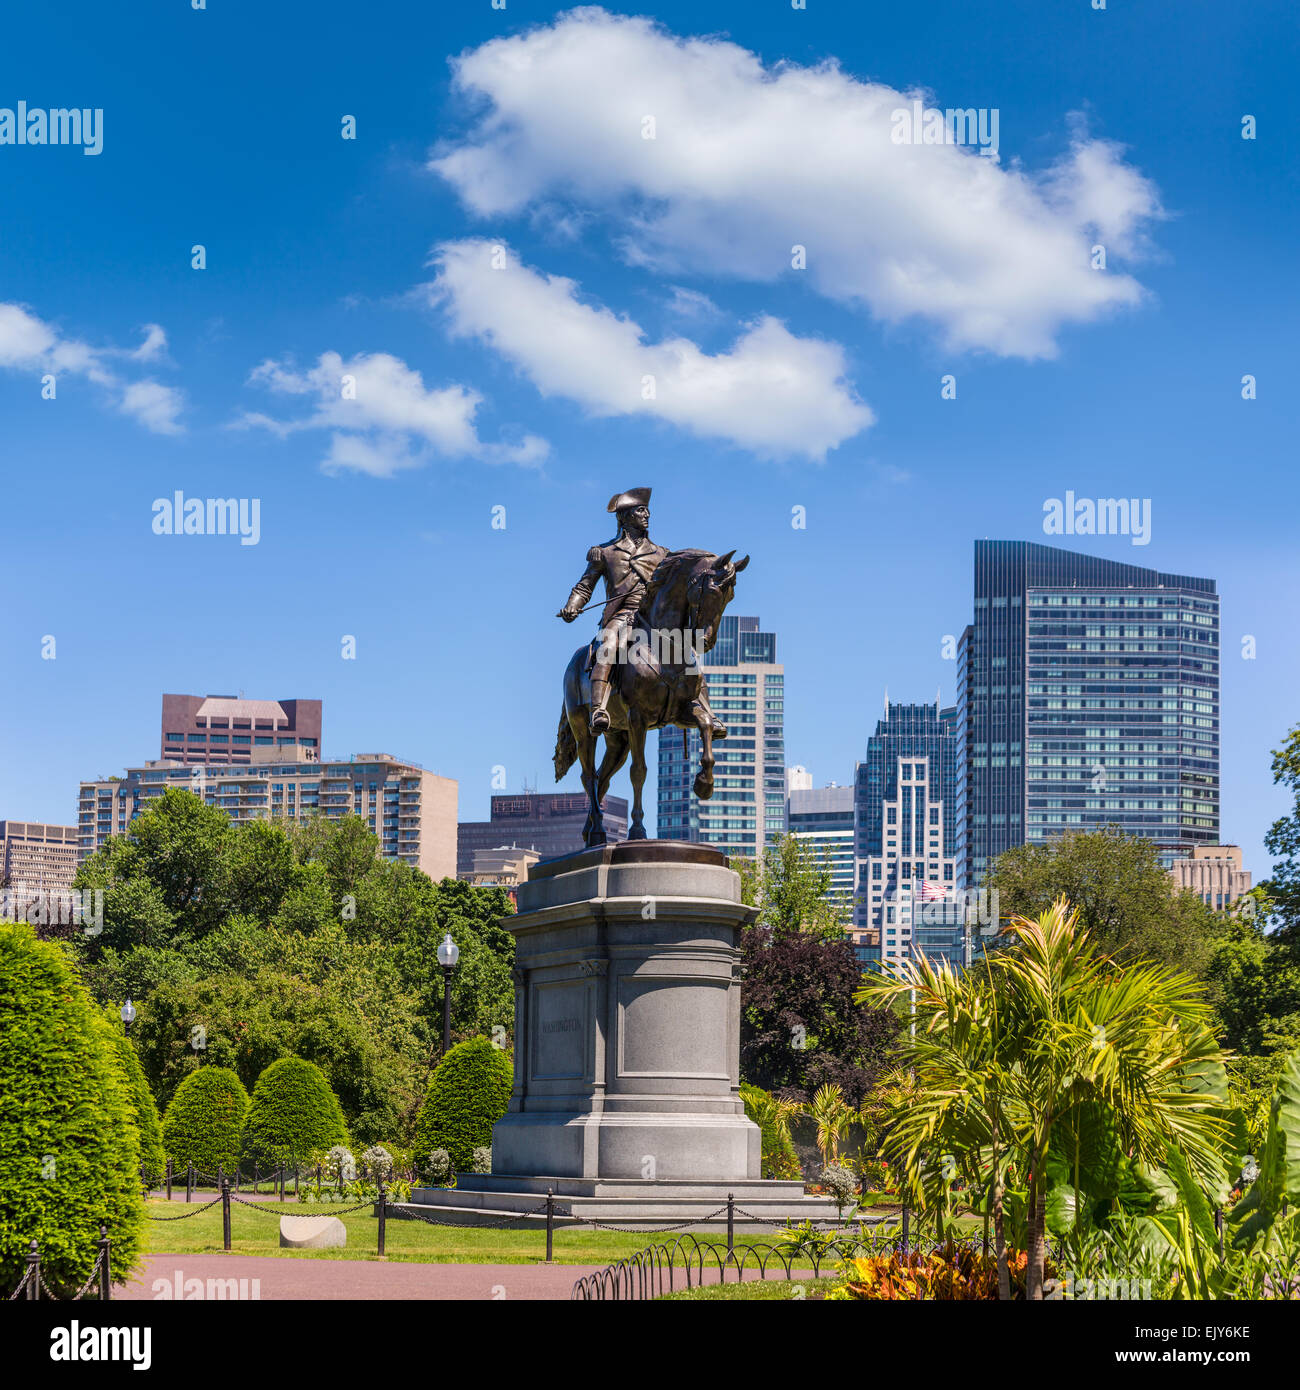 Boston Common George Washington Monument in Massachusetts, USA Stockbild